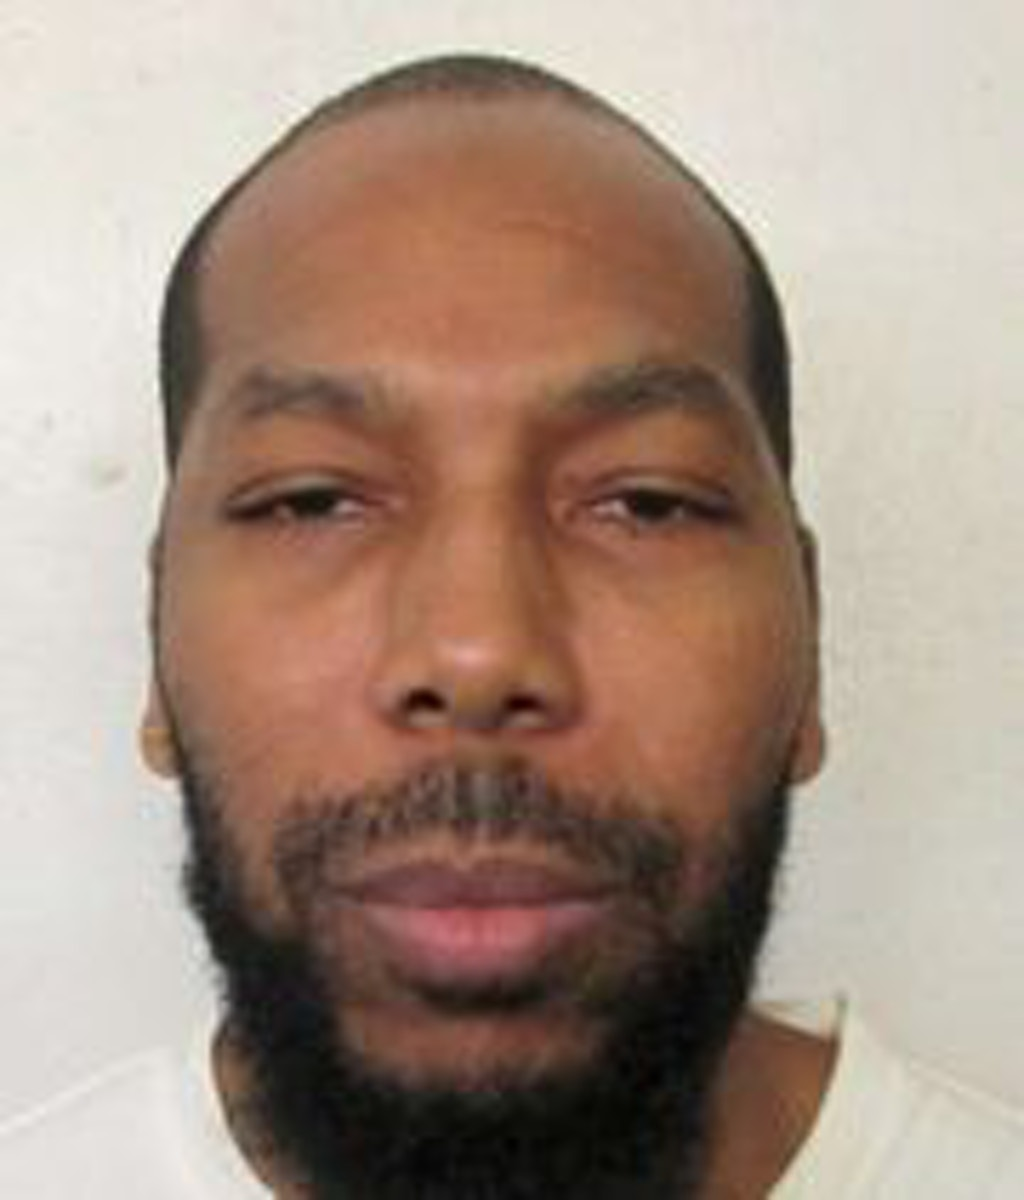 Supreme Court's Intervention to Allow Execution of Domineque Ray Provokes Widespread Condemnation